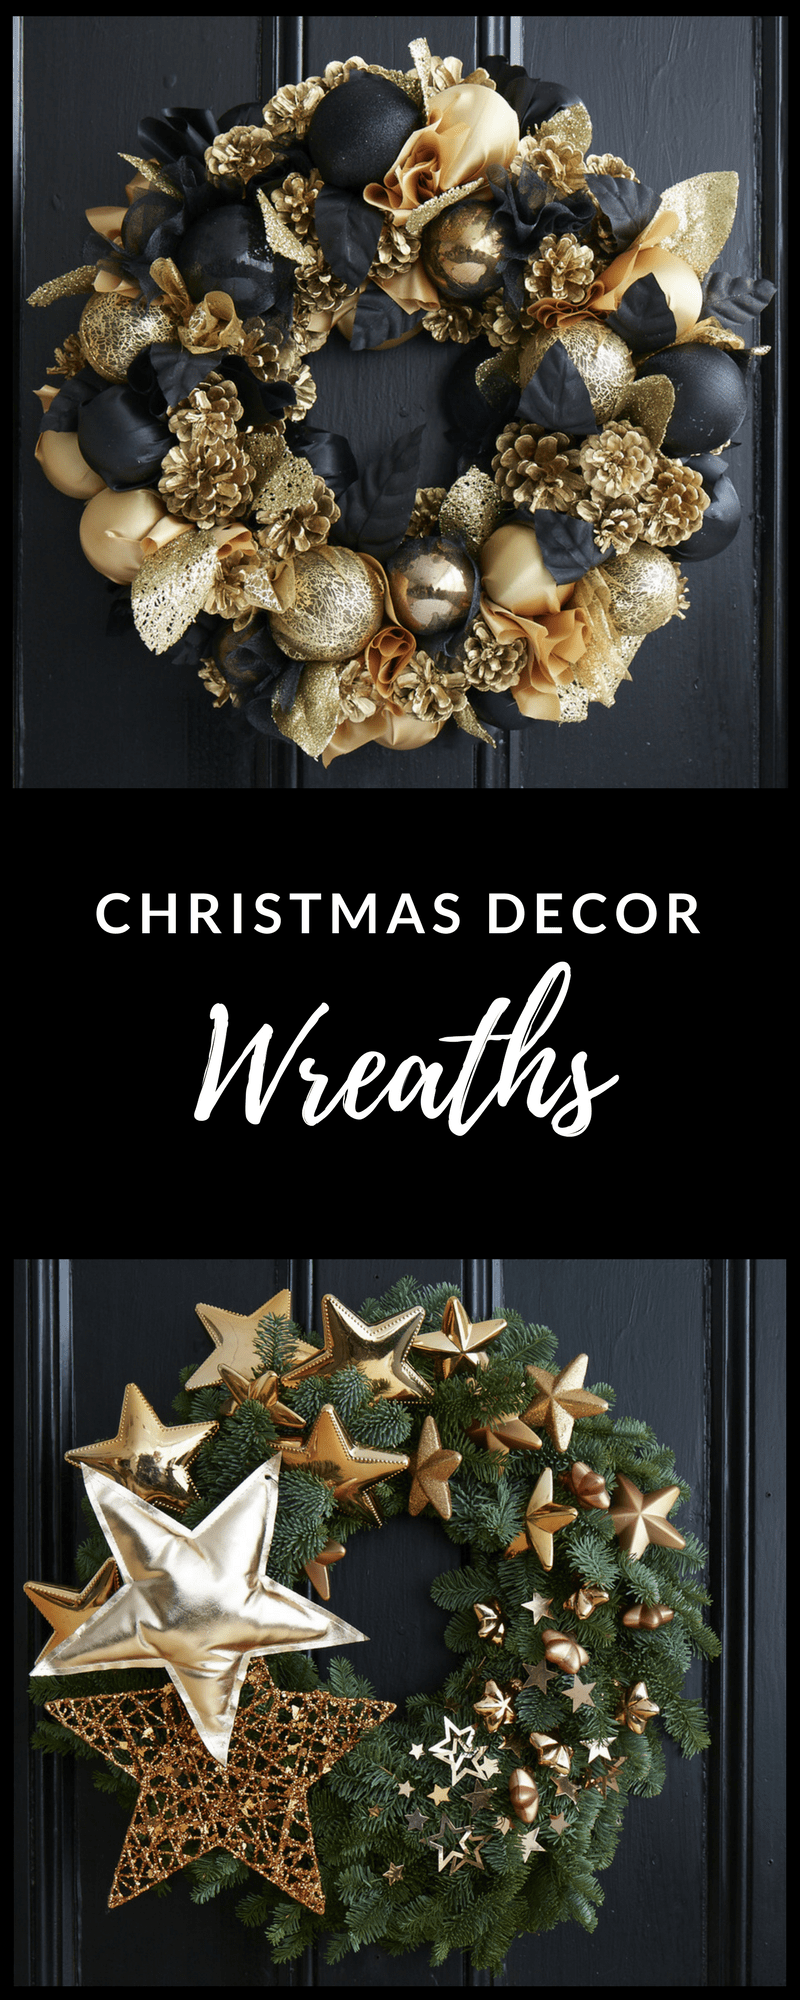 gold Christmas wreaths from designer florist Jane Packer